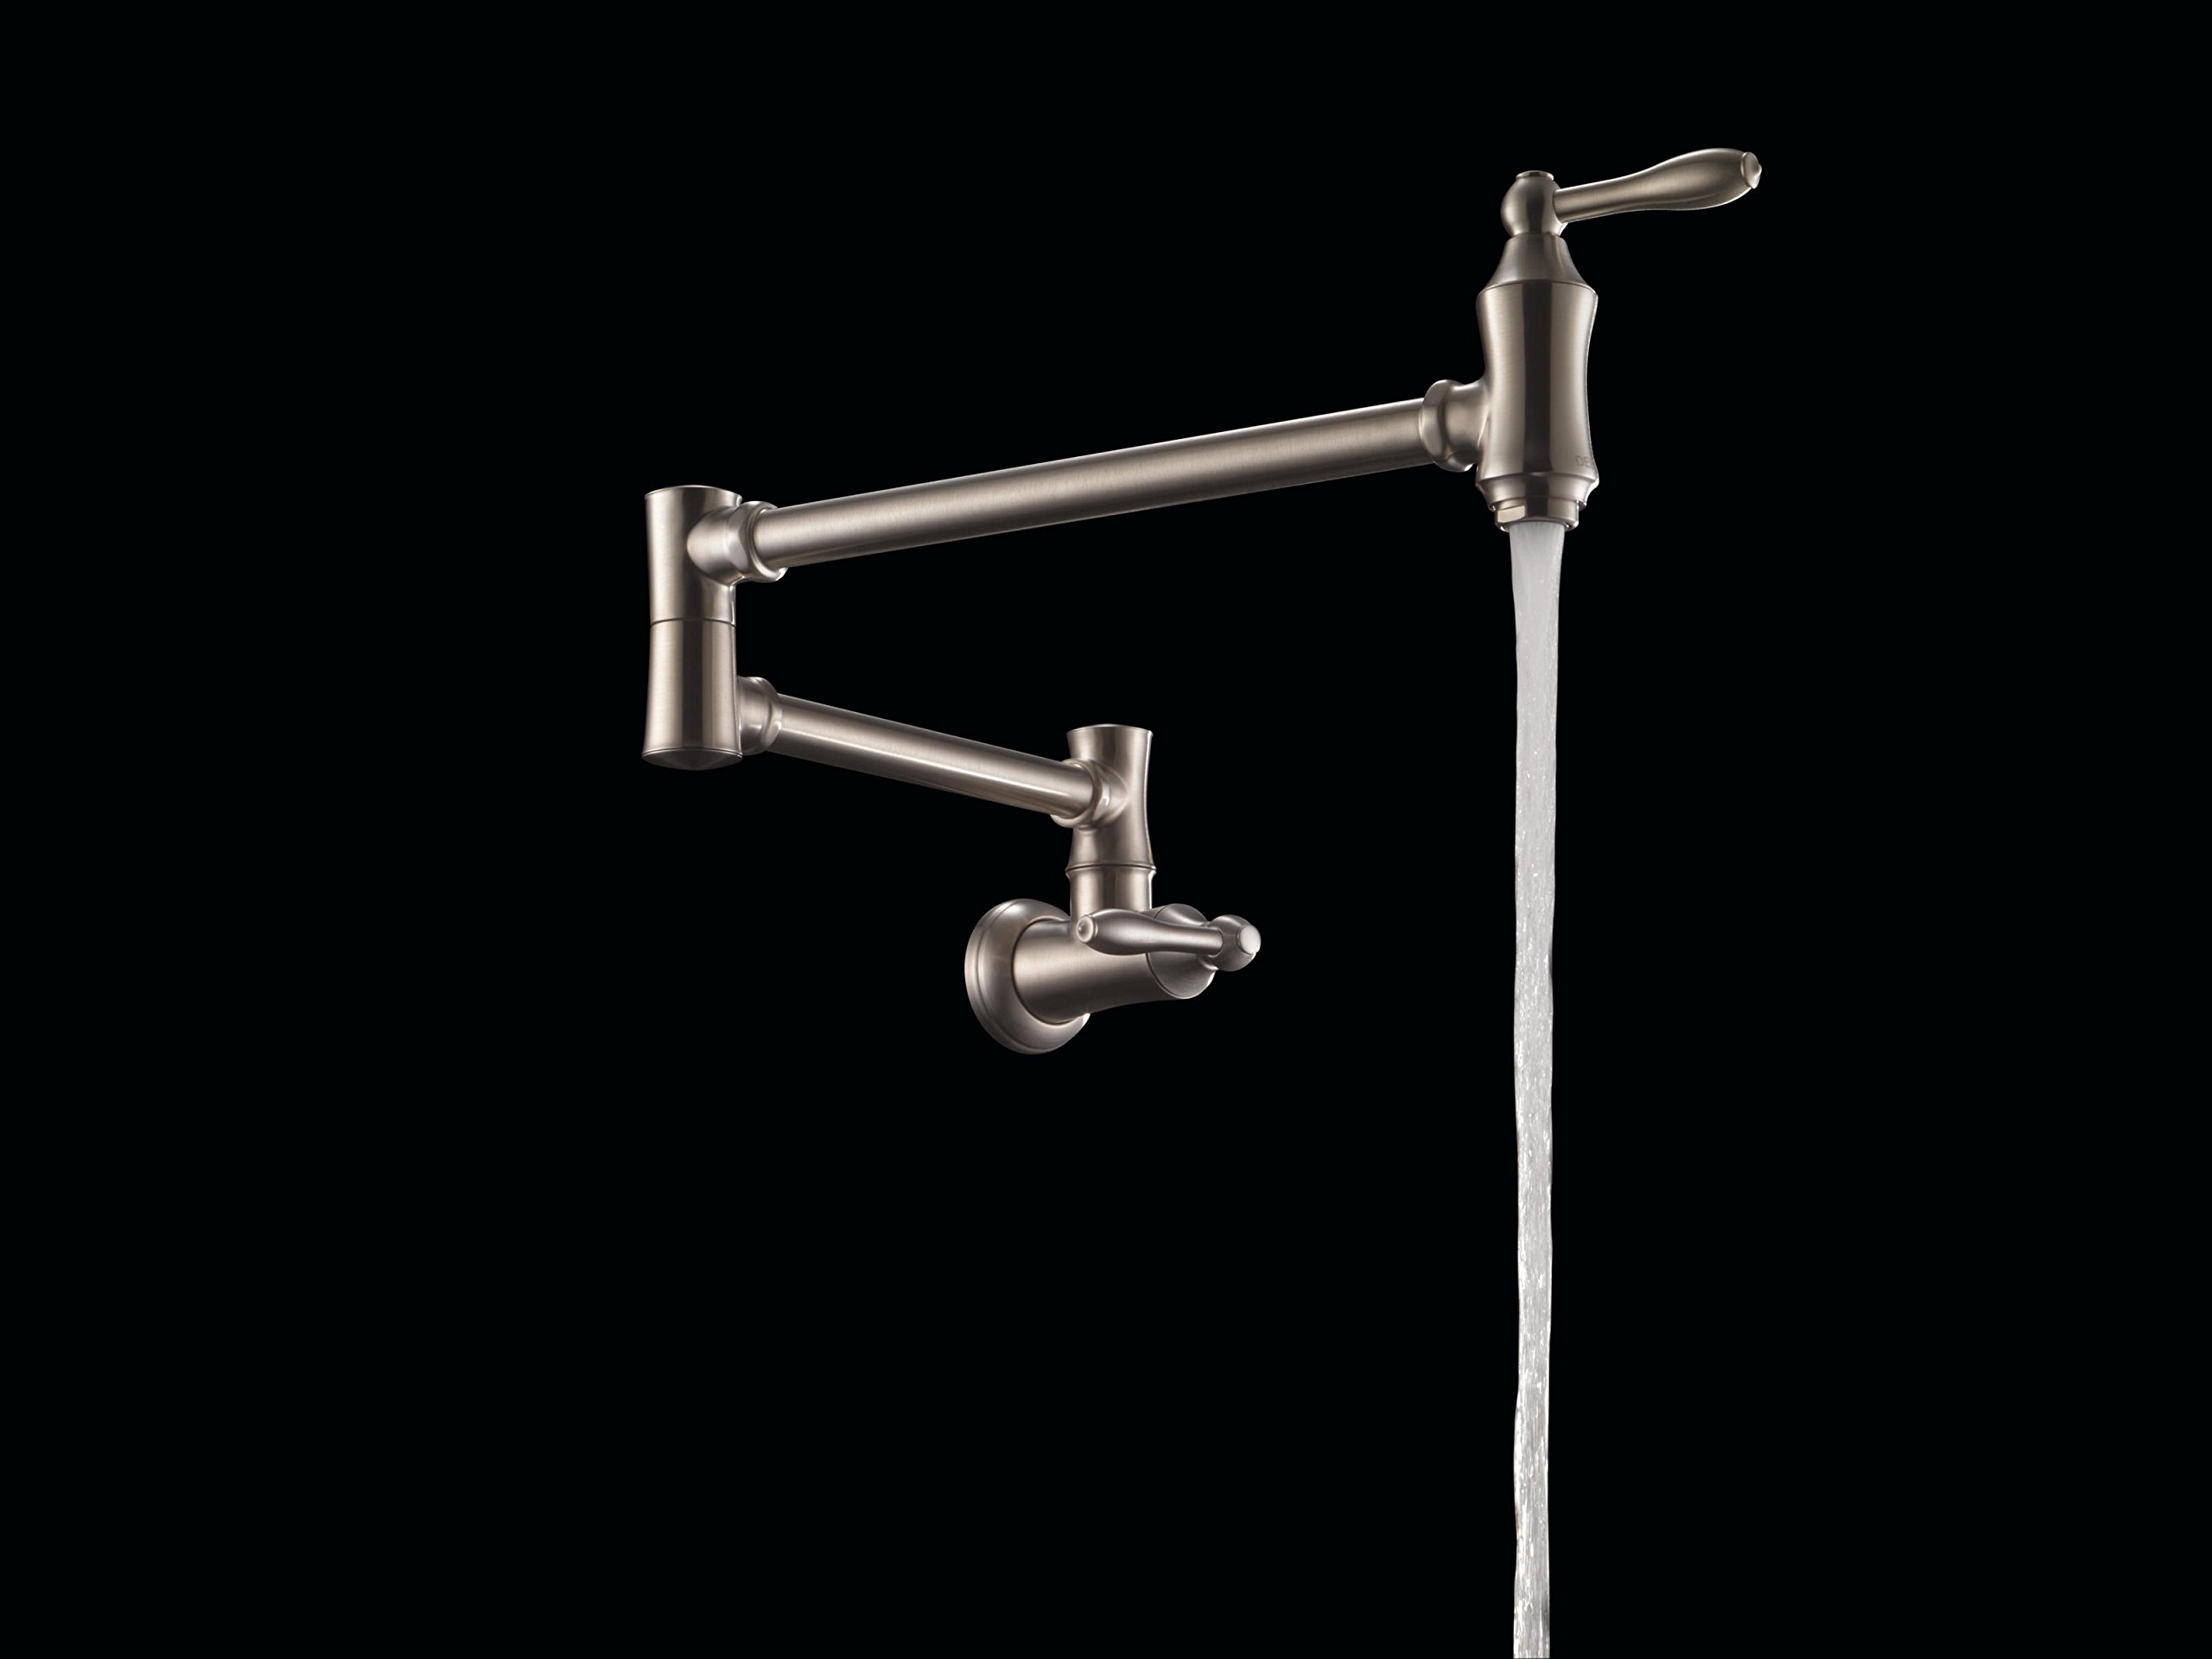 Delta Faucet Traditional Wall-Mount Pot Filler Faucet, Stainless 1177LF-SS by DELTA FAUCET (Image #4)